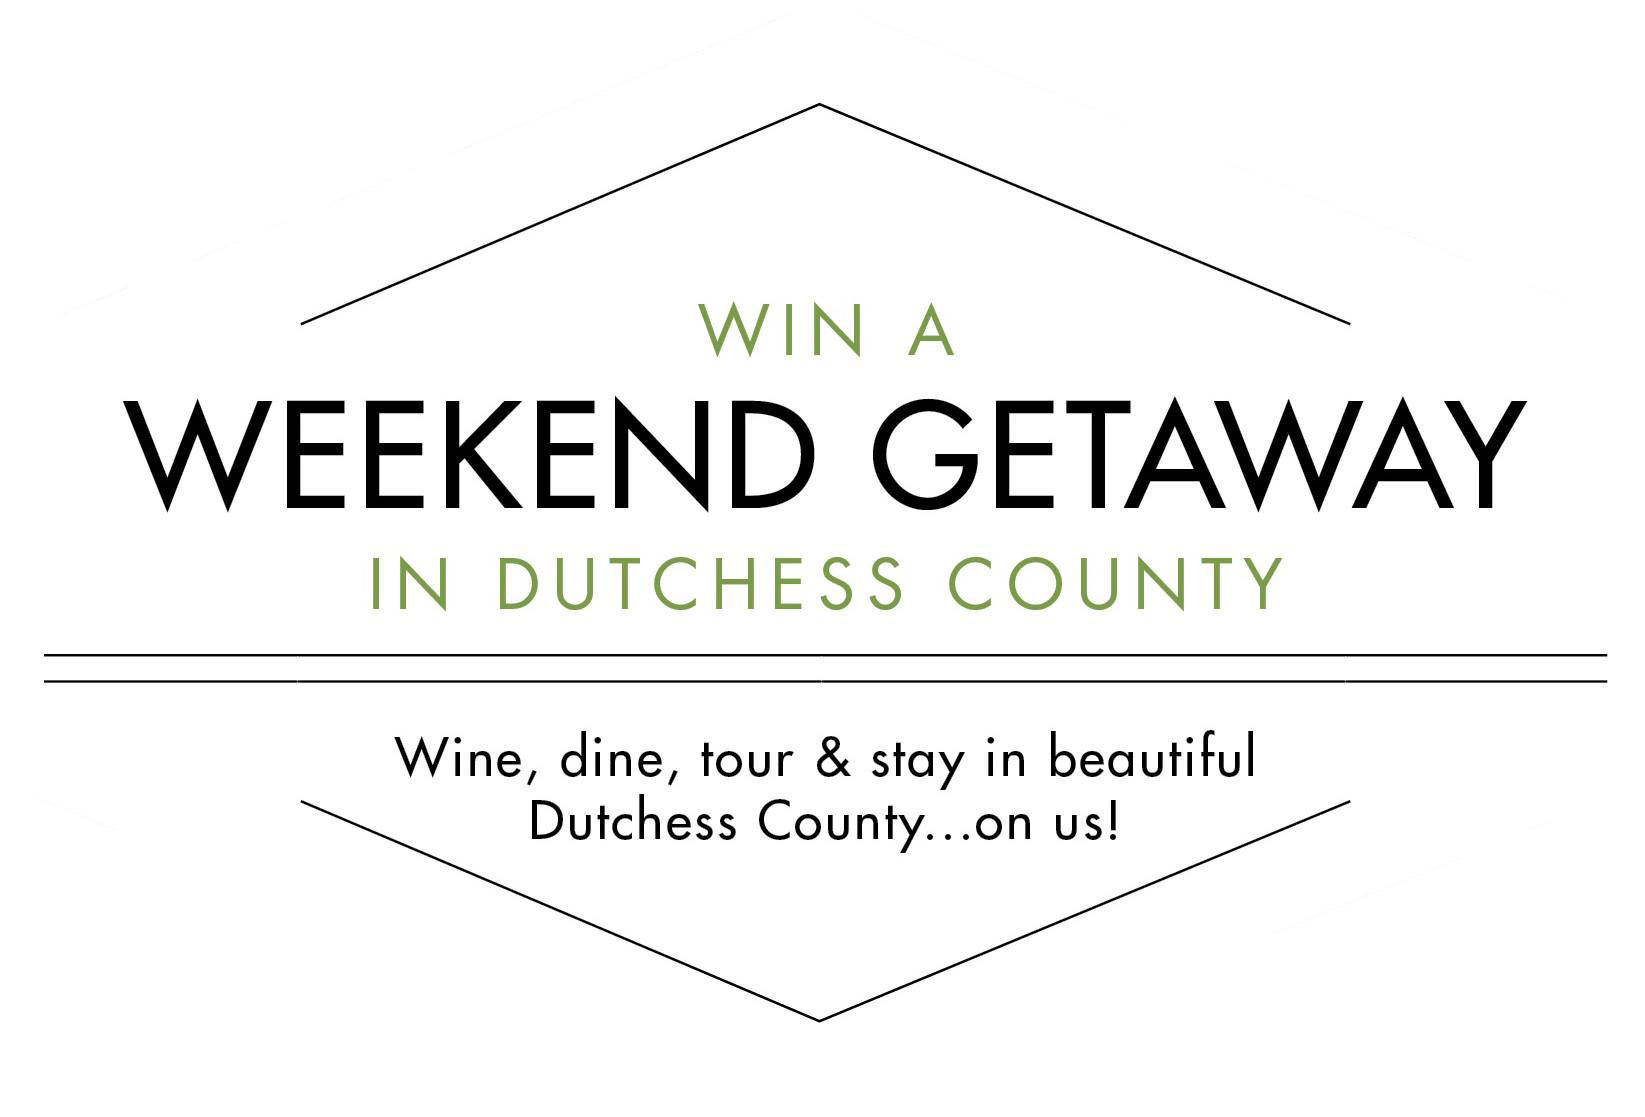 Dutchess County Getaway